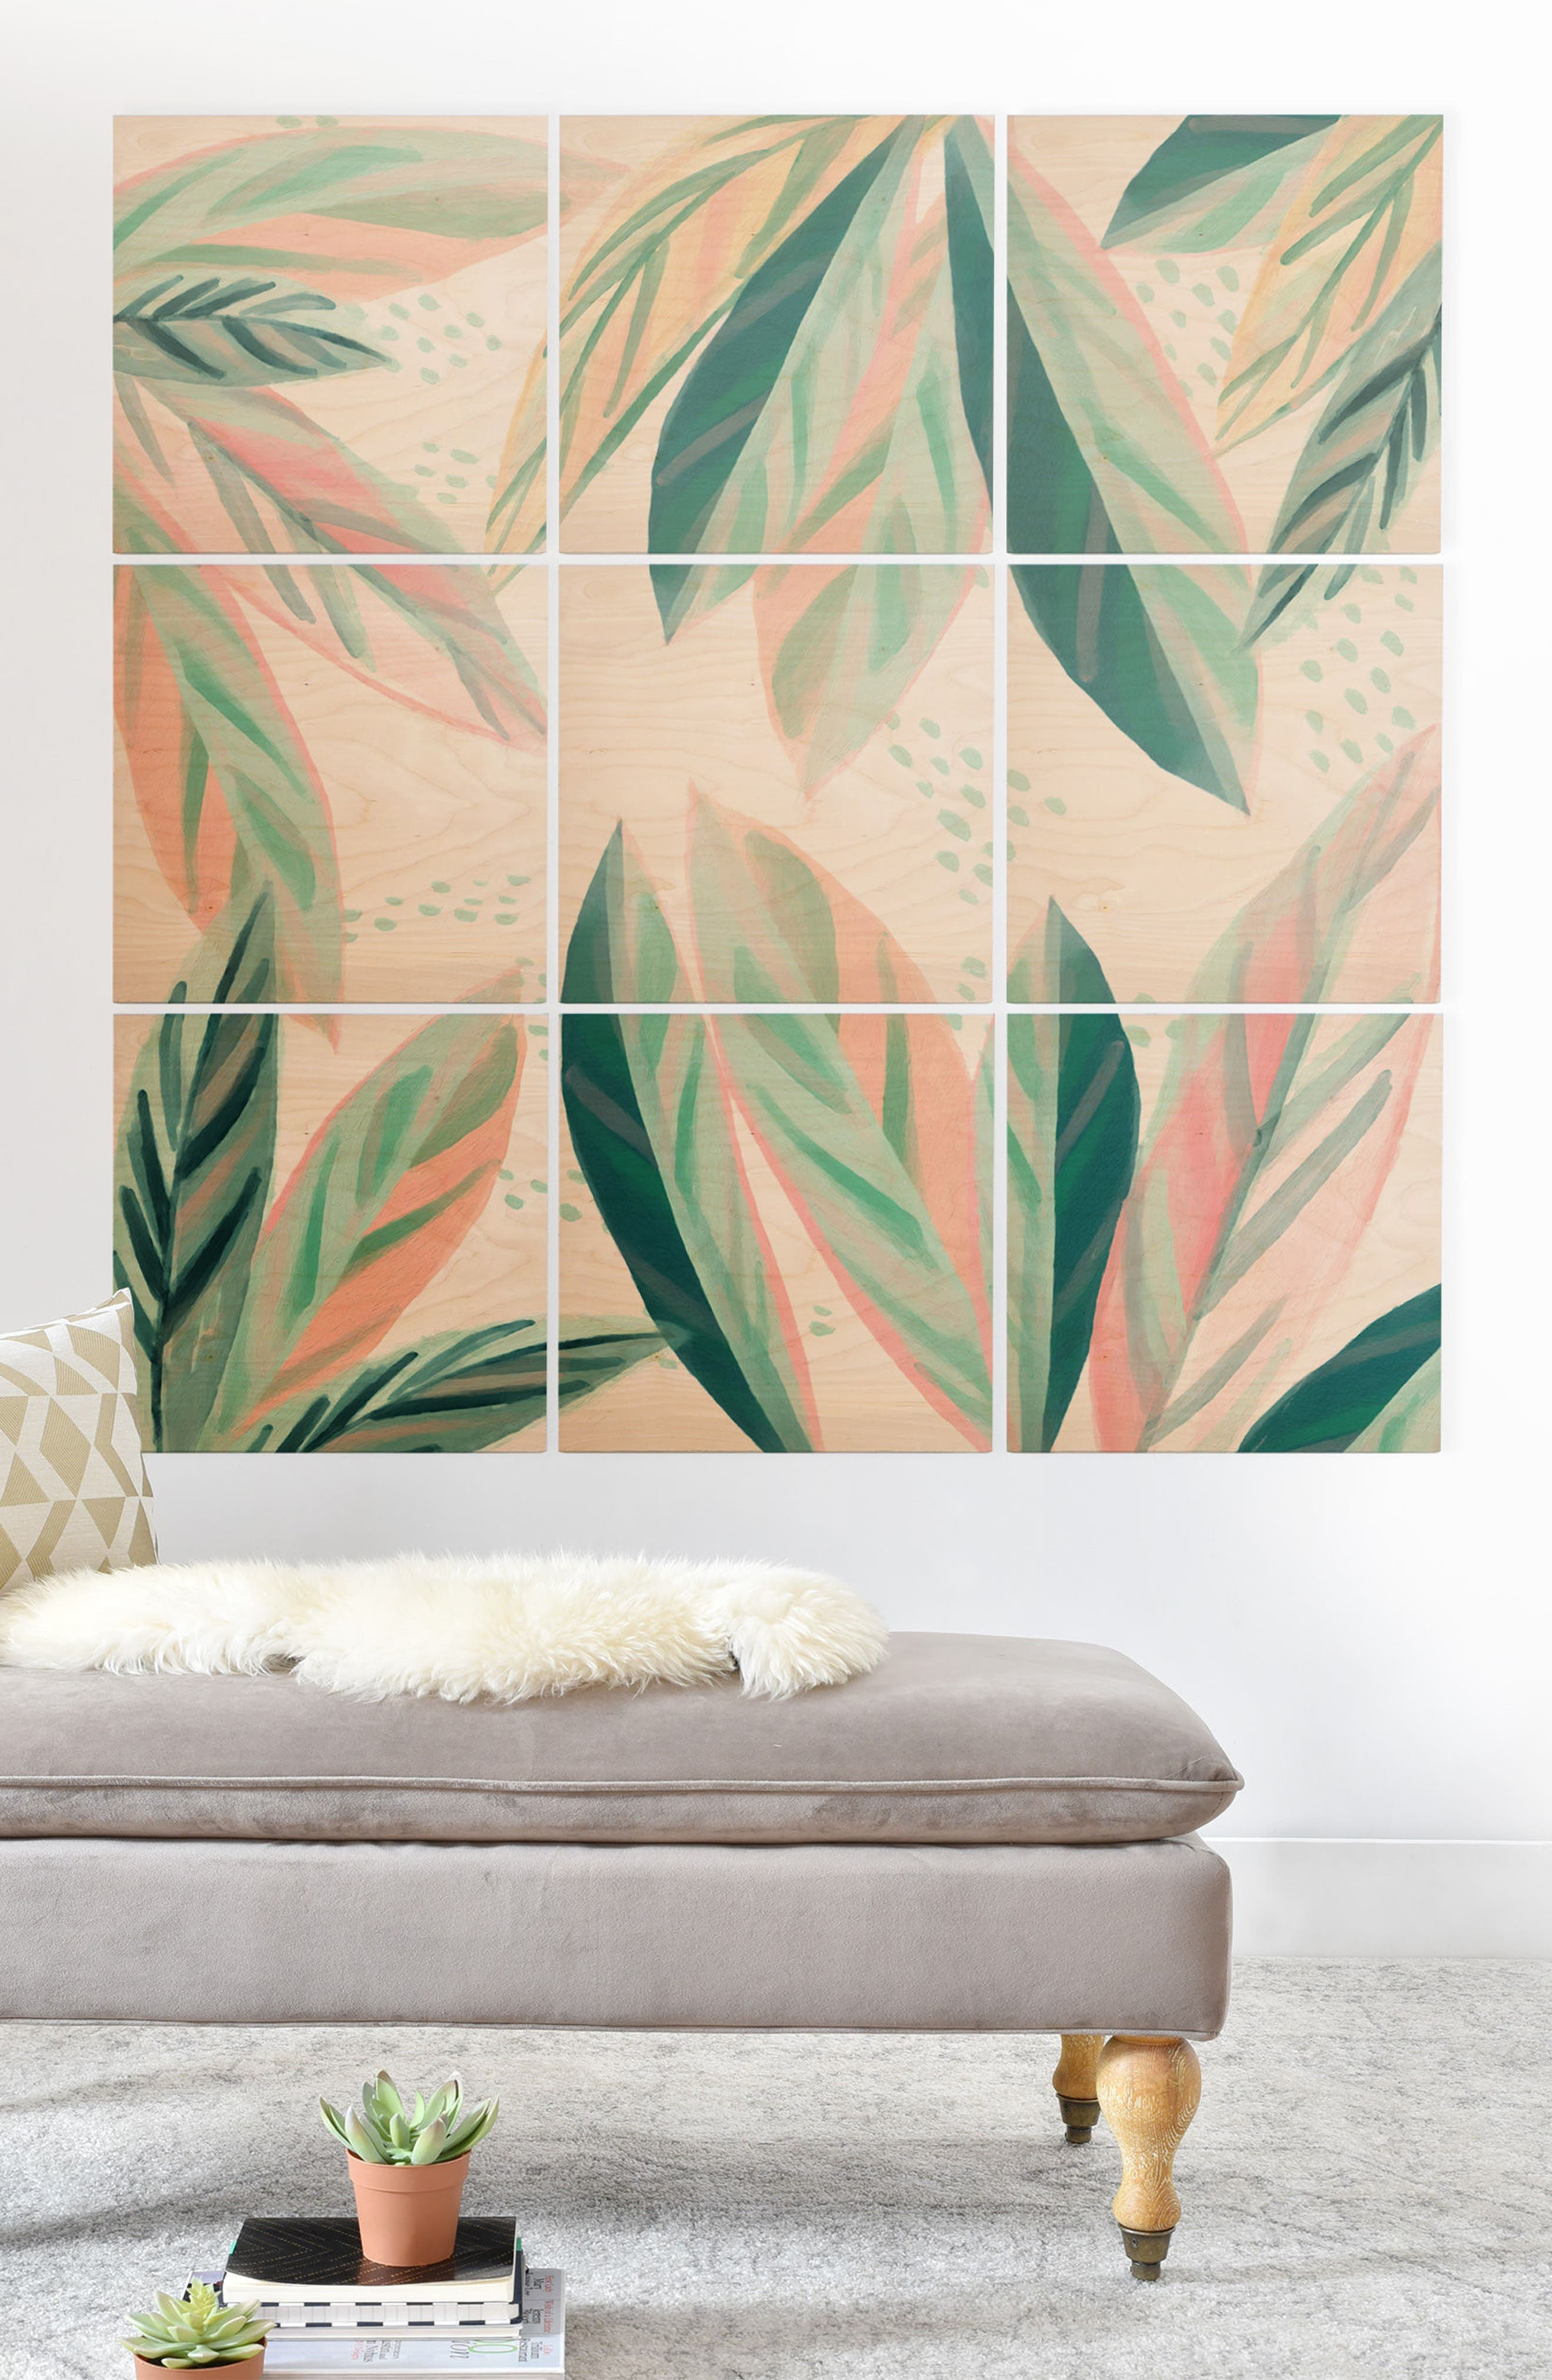 Painterly Palms 9-Piece Wood Wall Mural,                             Alternate thumbnail 2, color,                             Pastel Green